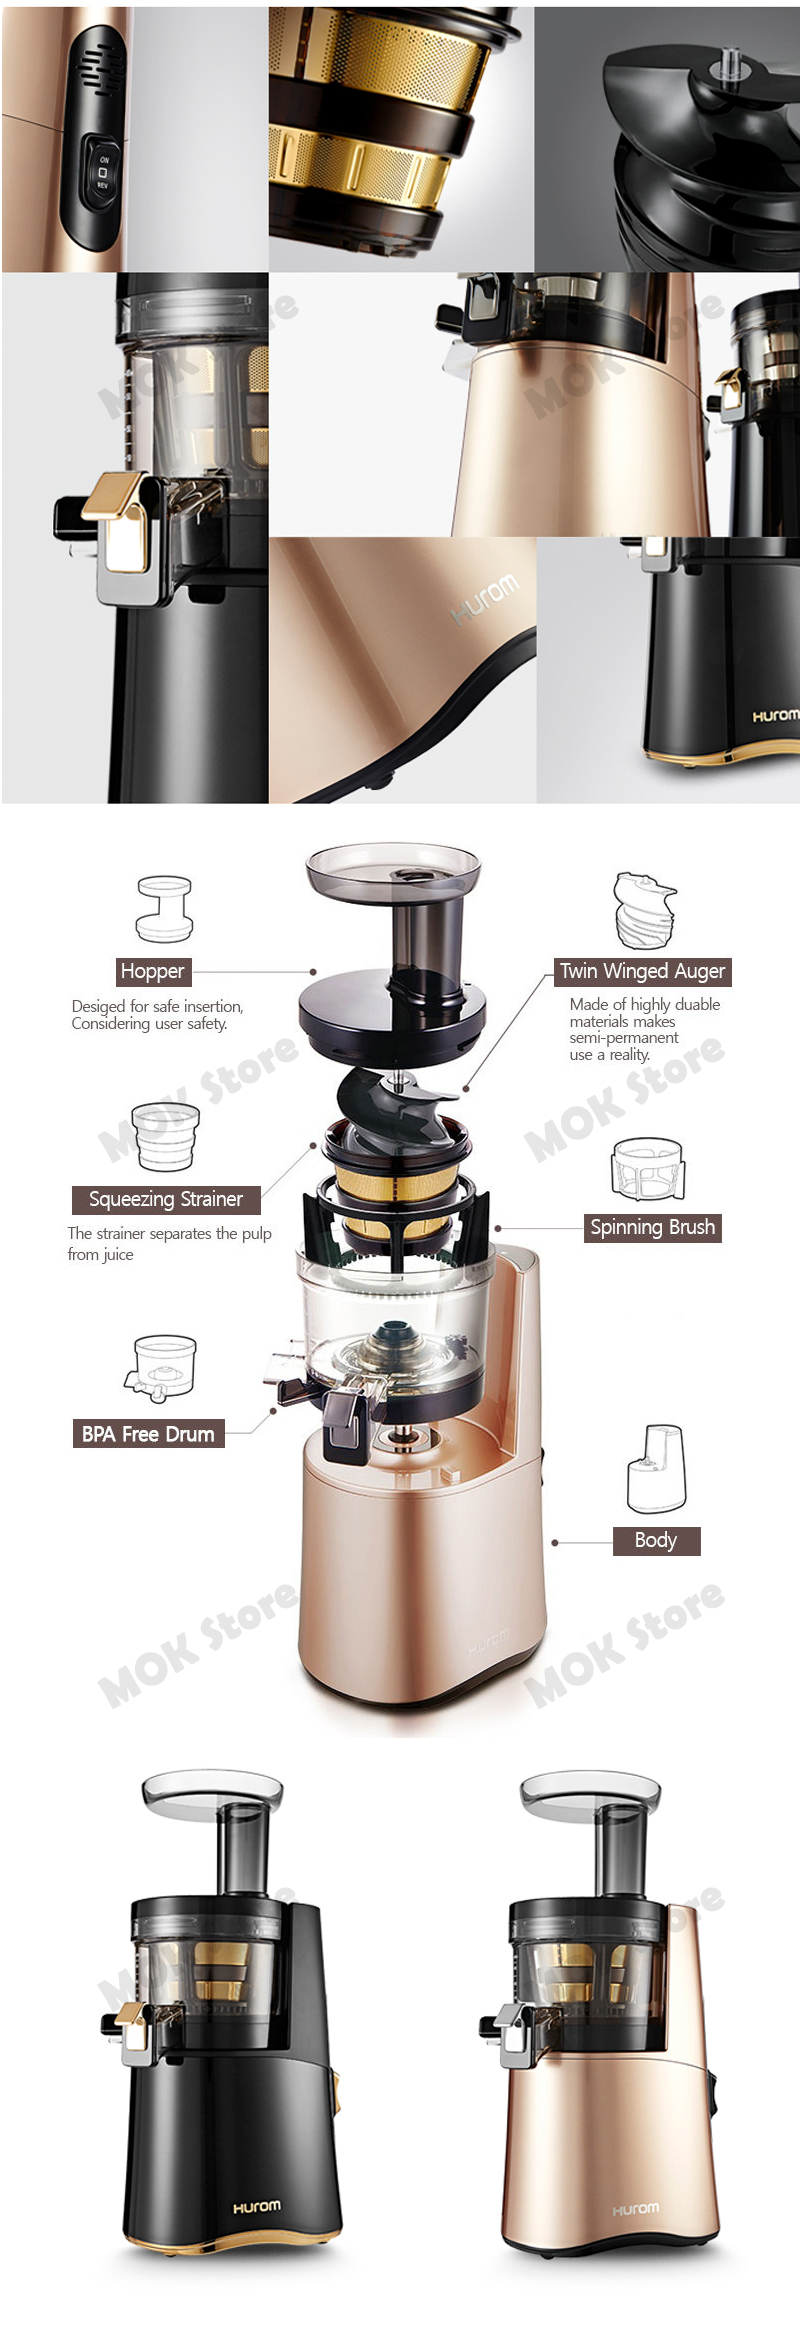 Hurom Alpha Premium Slow Juicer H Aa Lbf17 : Hurom Alpha H AA LBF17 Premium Slow Cold Press Juicer Squeeze Extractor Black eBay